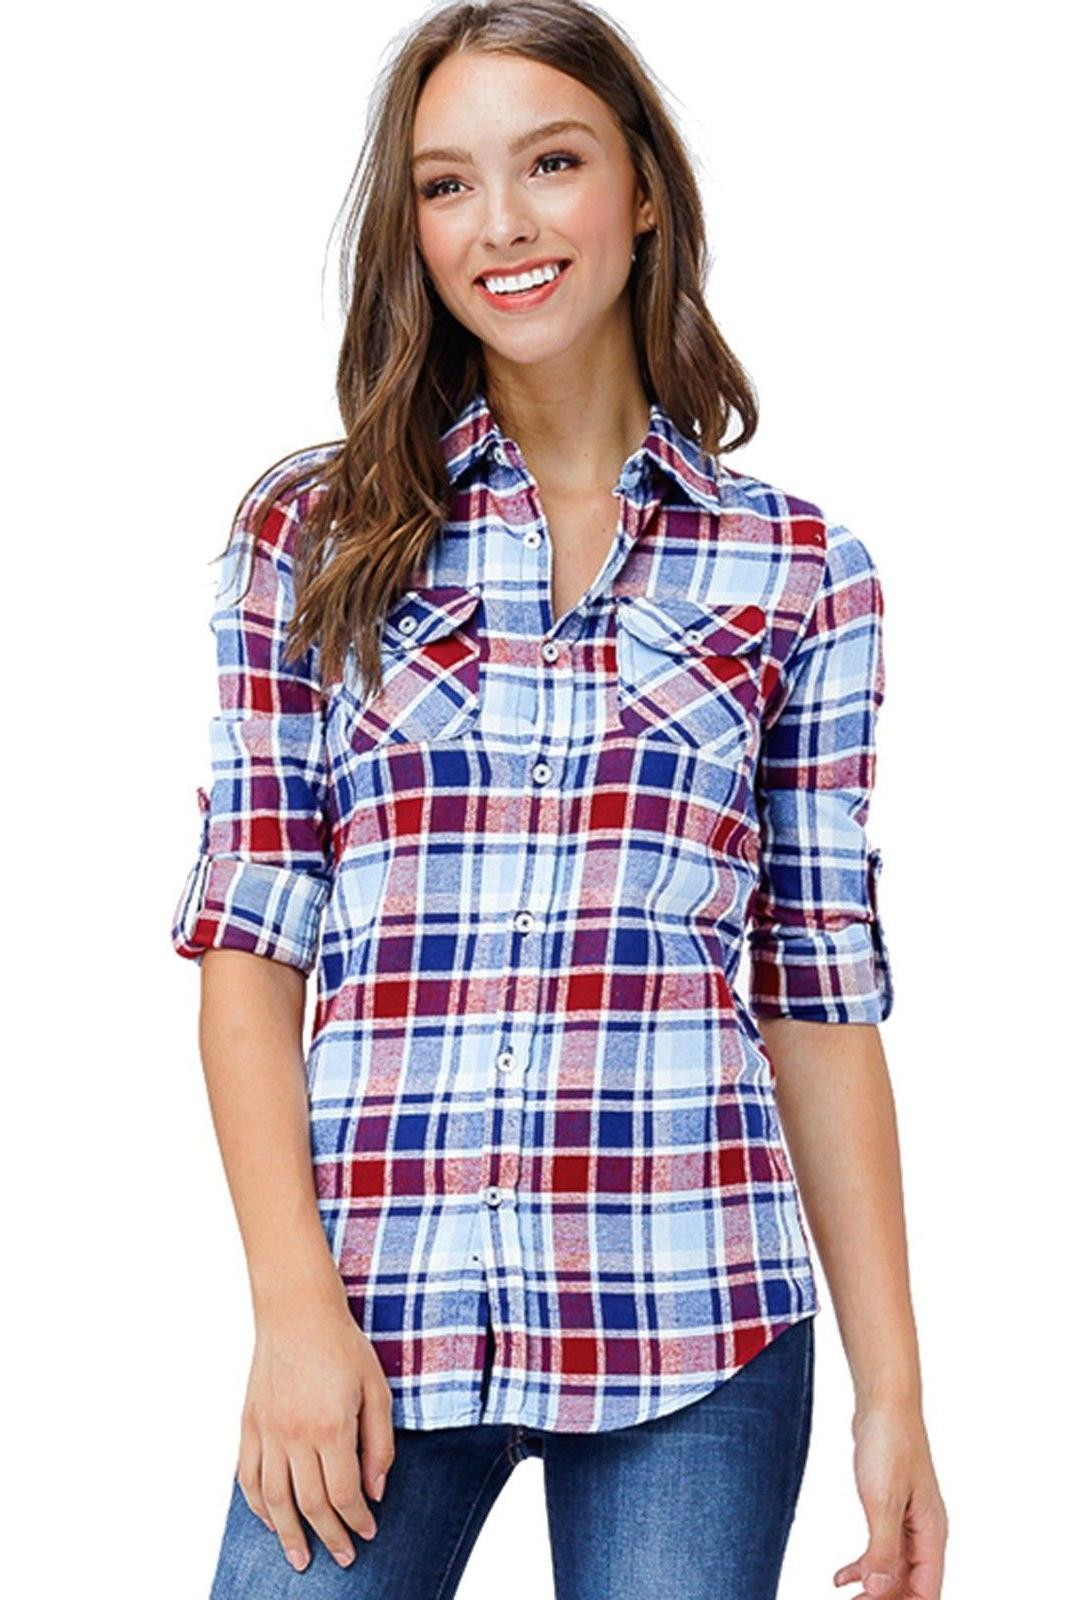 Inso Women's Plaid Checkered Long Cotton Button